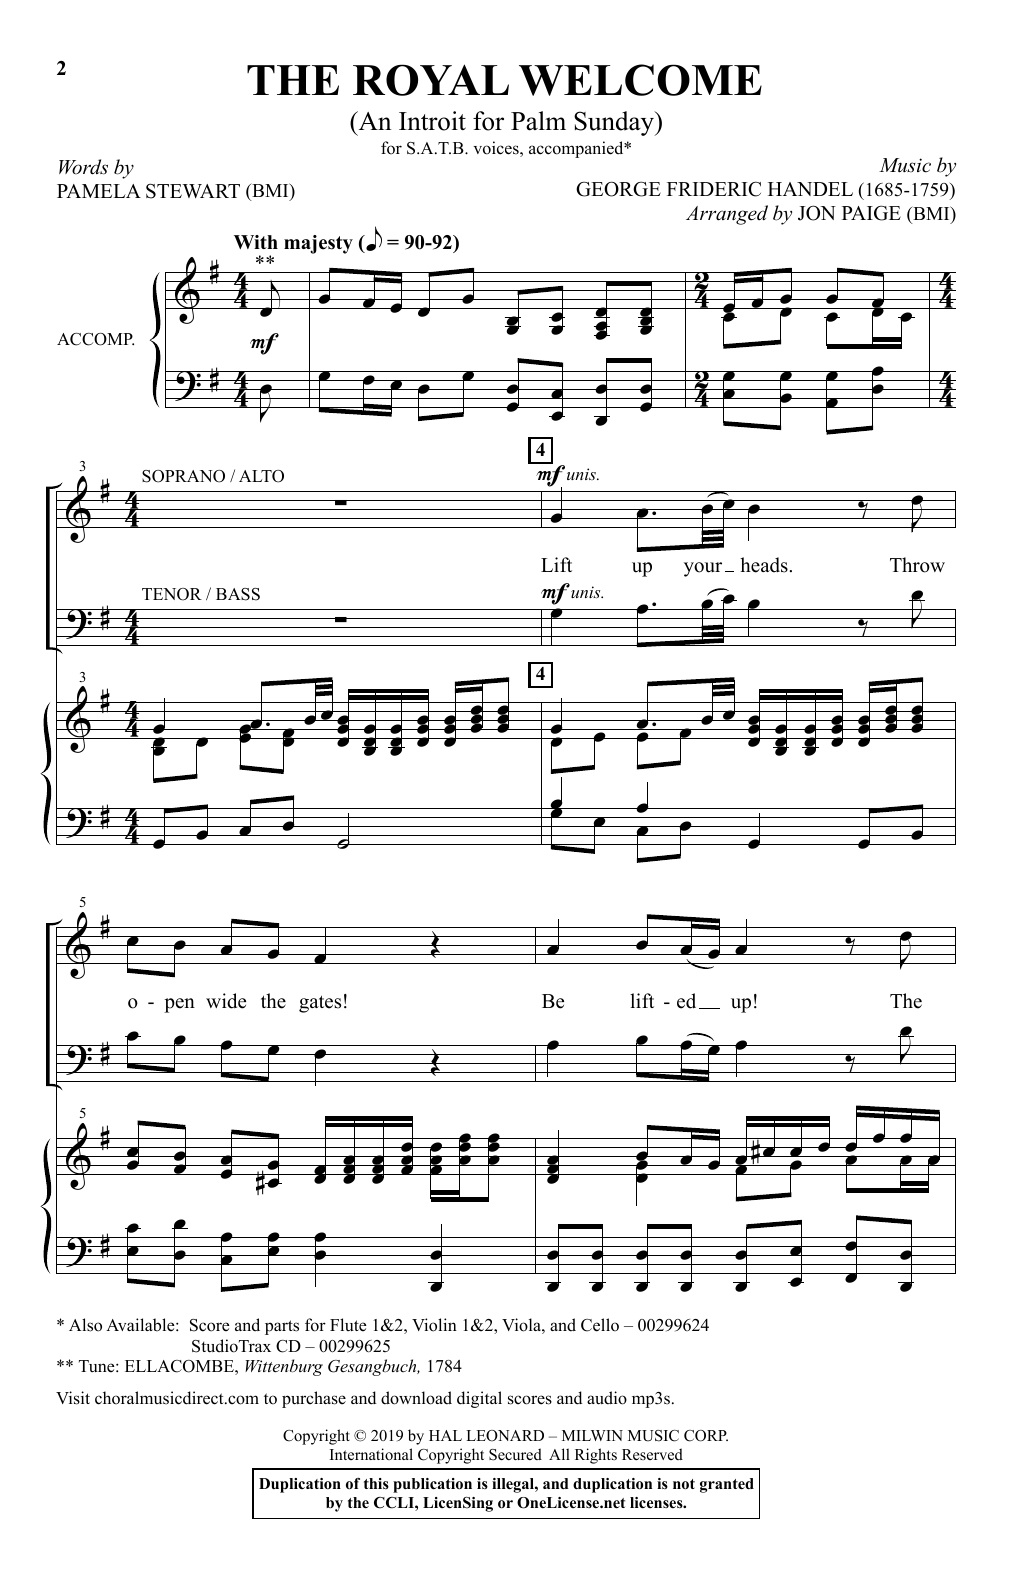 The Royal Welcome (An Introit For Palm Sunday) (arr. John Paige) Partituras Digitales